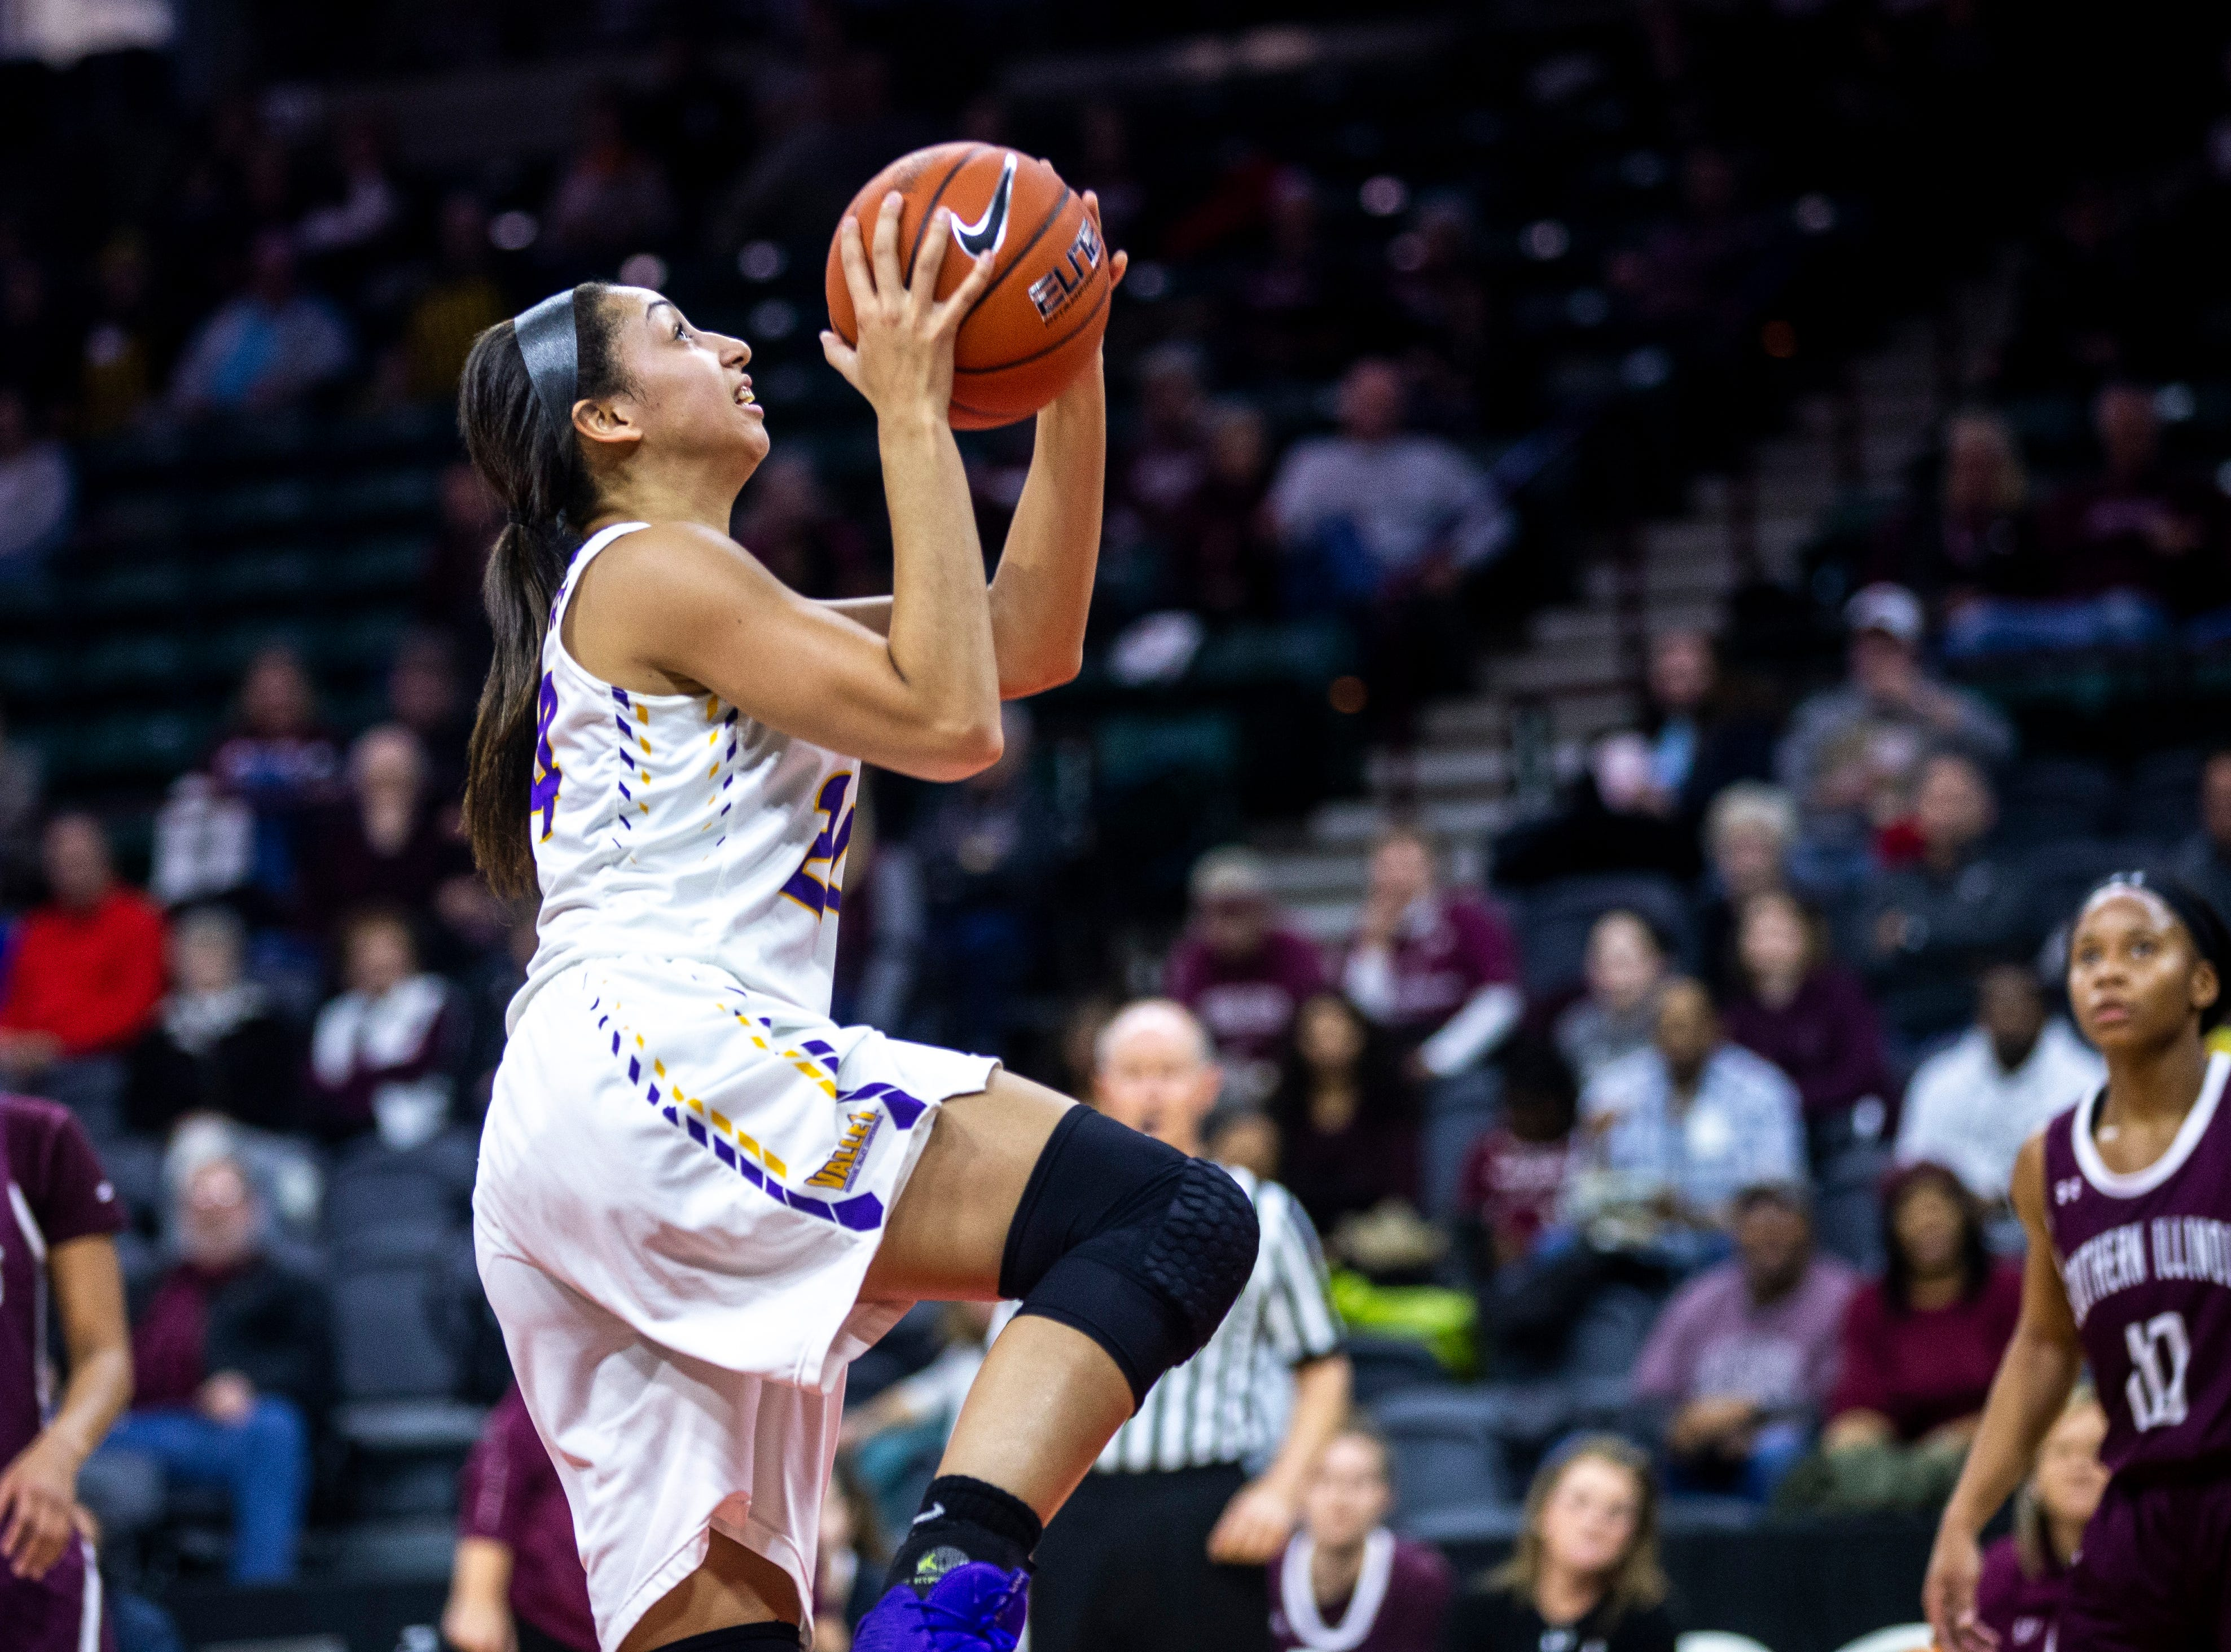 Northern Iowa guard Mikaela Morgan (24) drives to the basket during a NCAA Missouri Valley Conference women's basketball quarterfinal tournament game, Friday, March 15, 2019, at the TaxSlayer Center in Moline, Illinois.